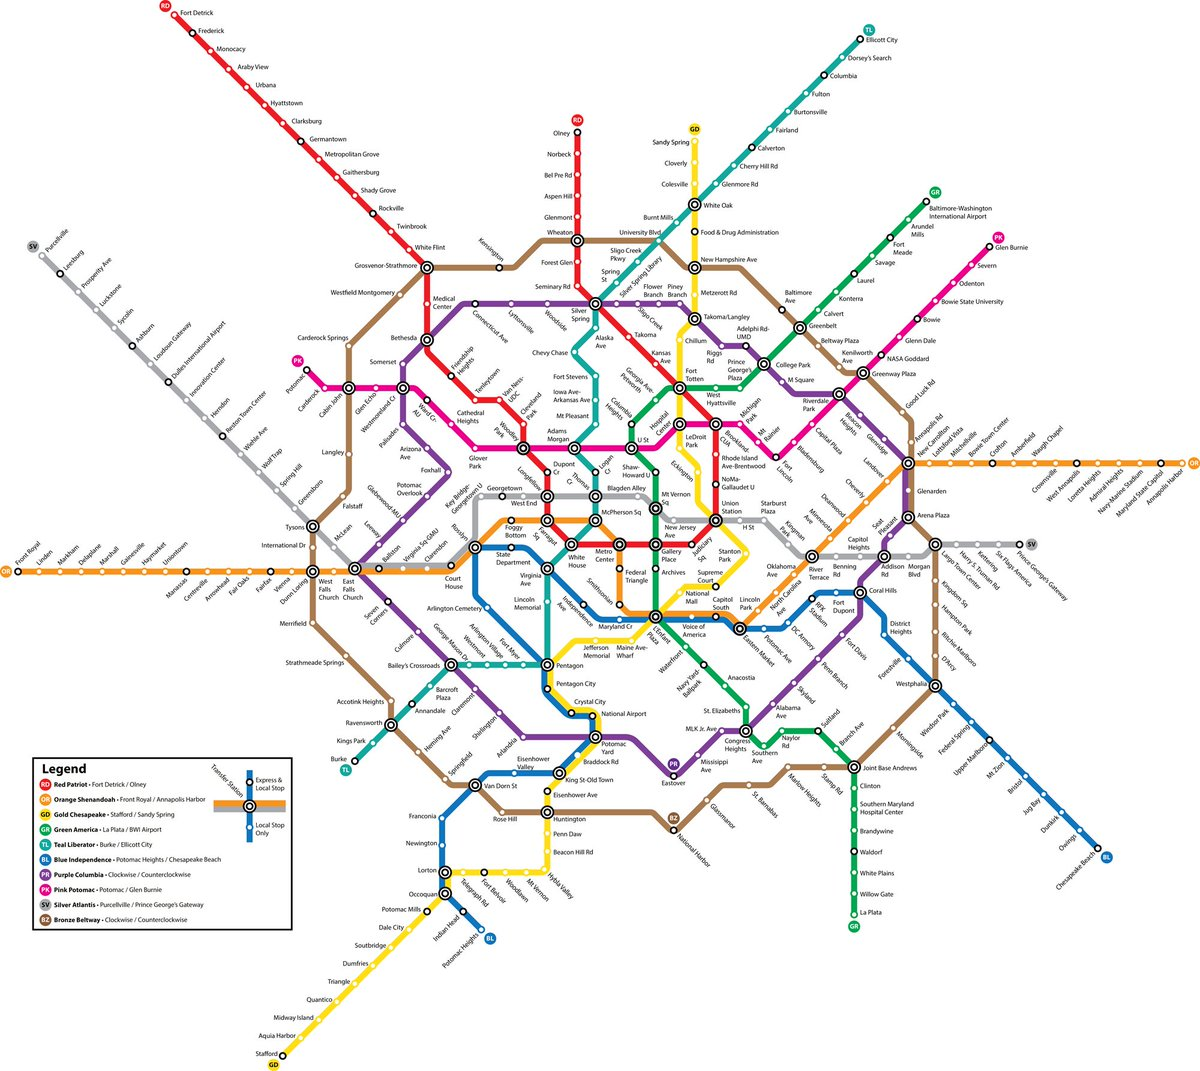 This person's April Fool's joke is the most sprawling #WMATA fantasy map I've ever seen. https://t.co/Y7NsIDTrEq https://t.co/pVsAs2h9VW